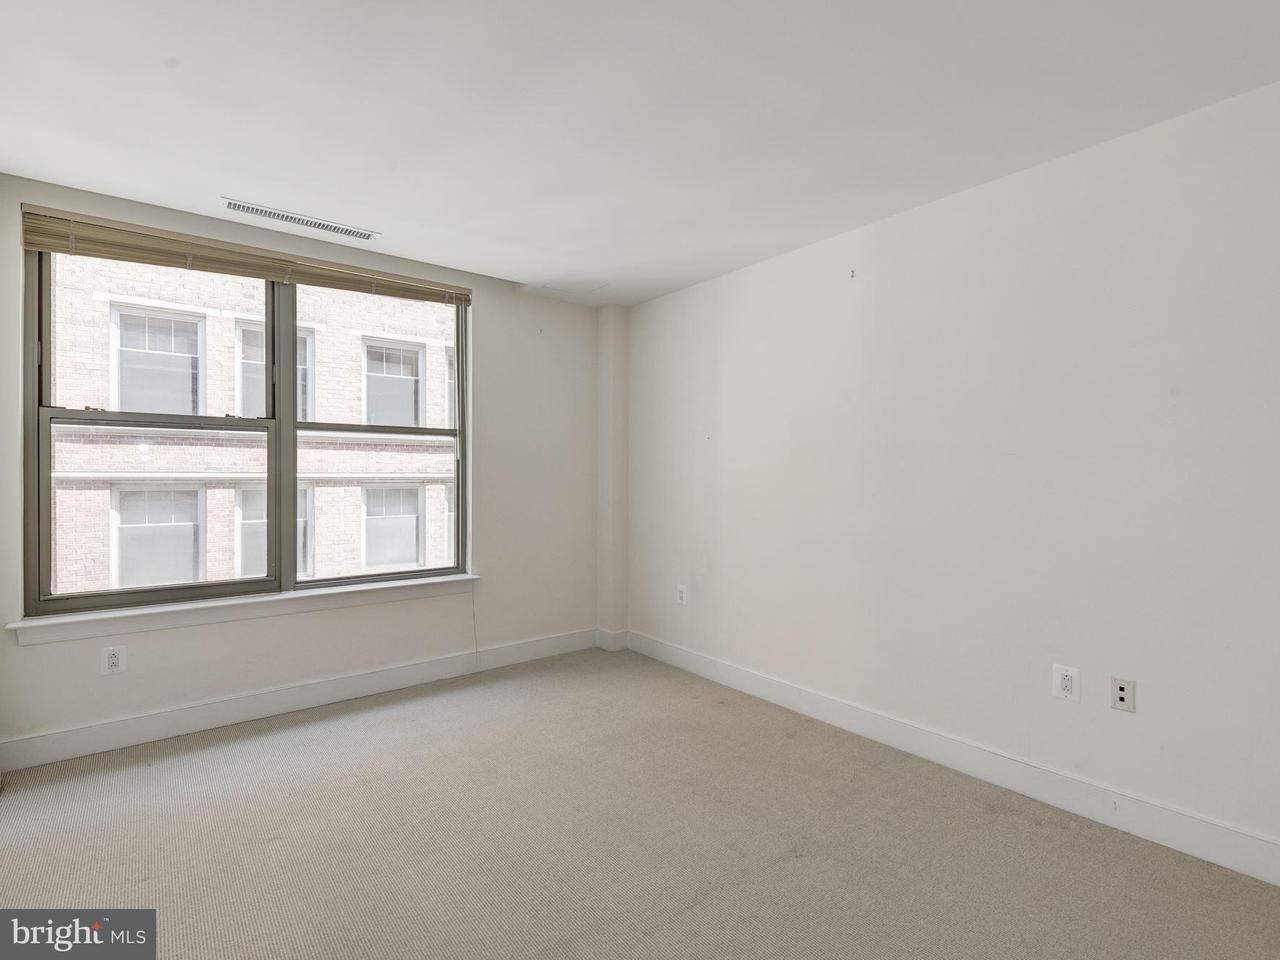 Additional photo for property listing at 2425 L St NW #332  Washington, District Of Columbia 20037 United States